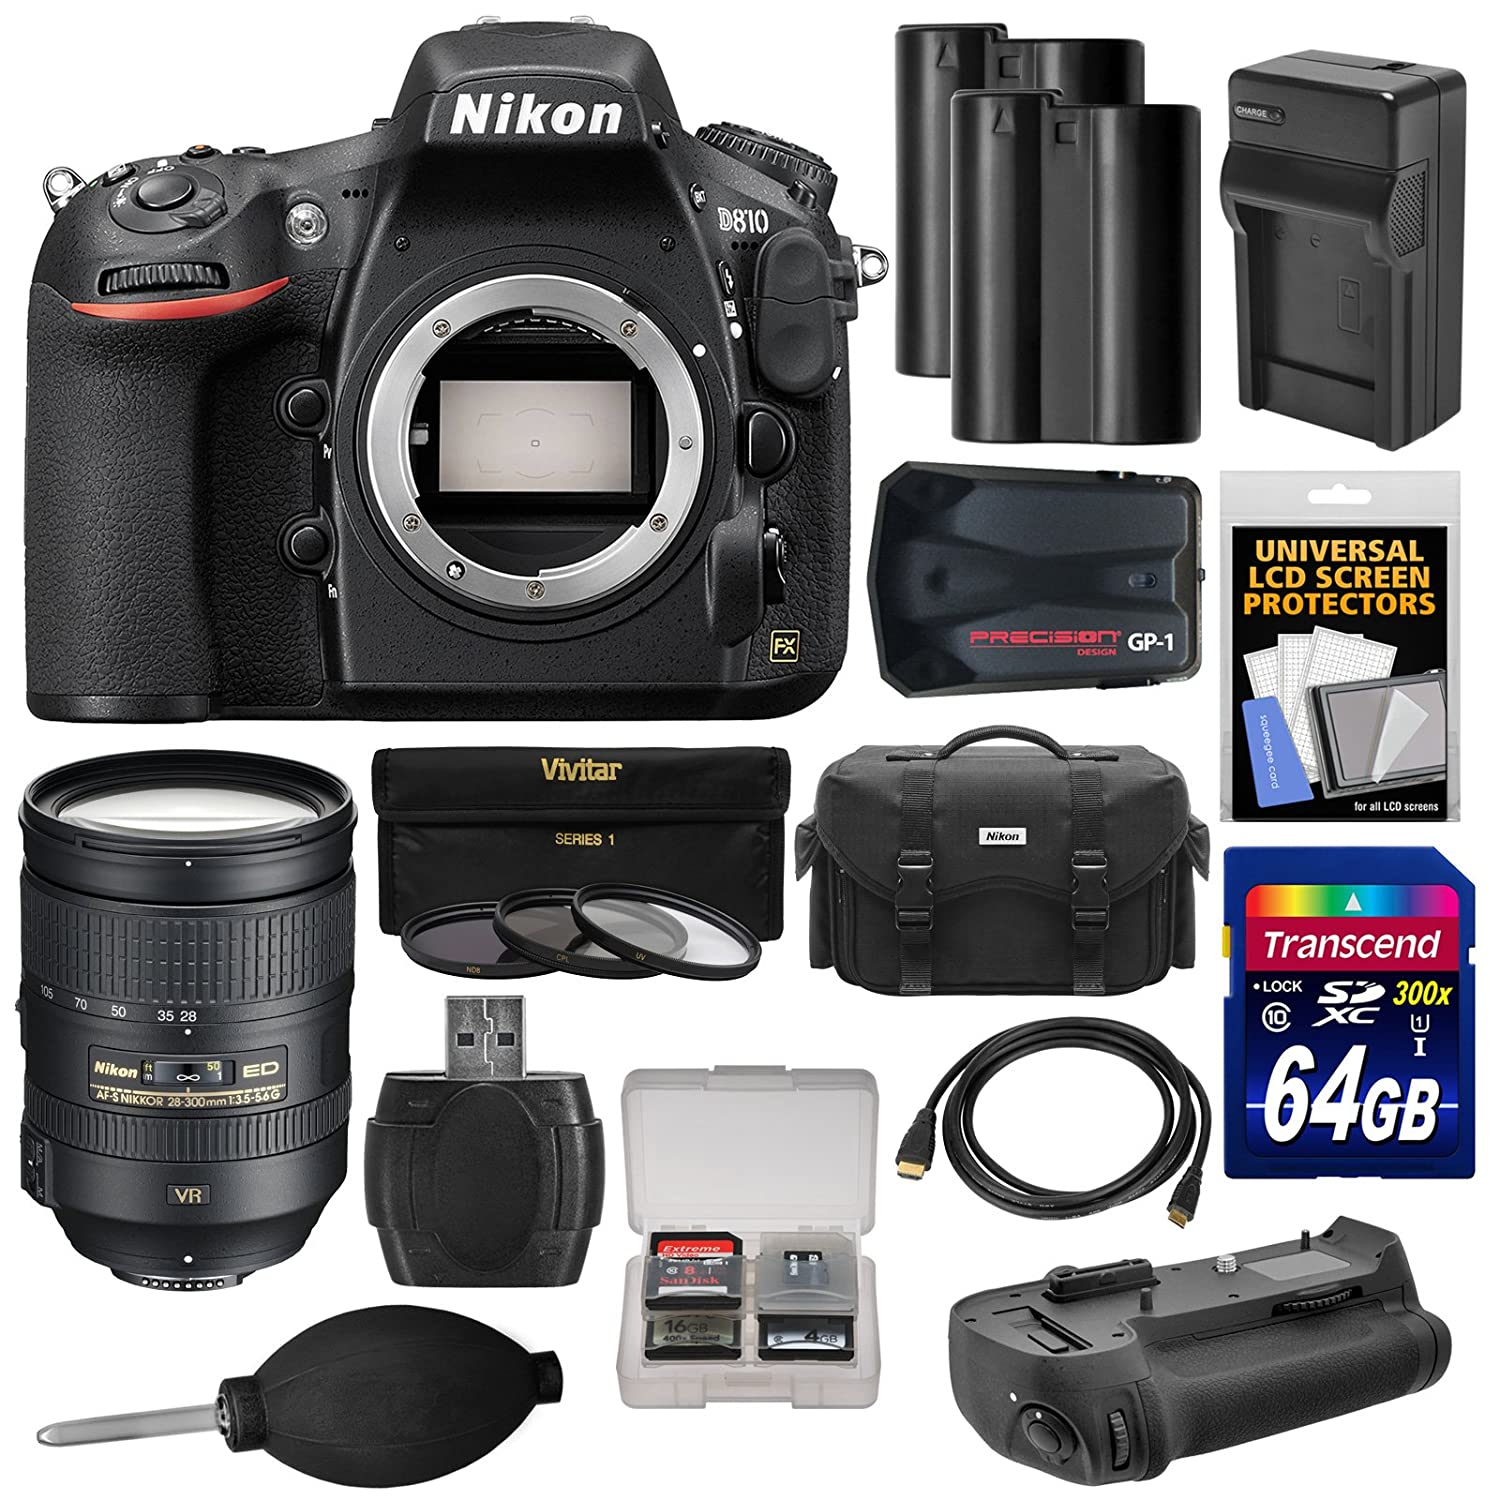 Camera Dslr Camera Lens Types amazon com nikon d810 digital slr camera body with 28 300mm vr lens 64gb card 2 batteriescharger case gps adapter grip